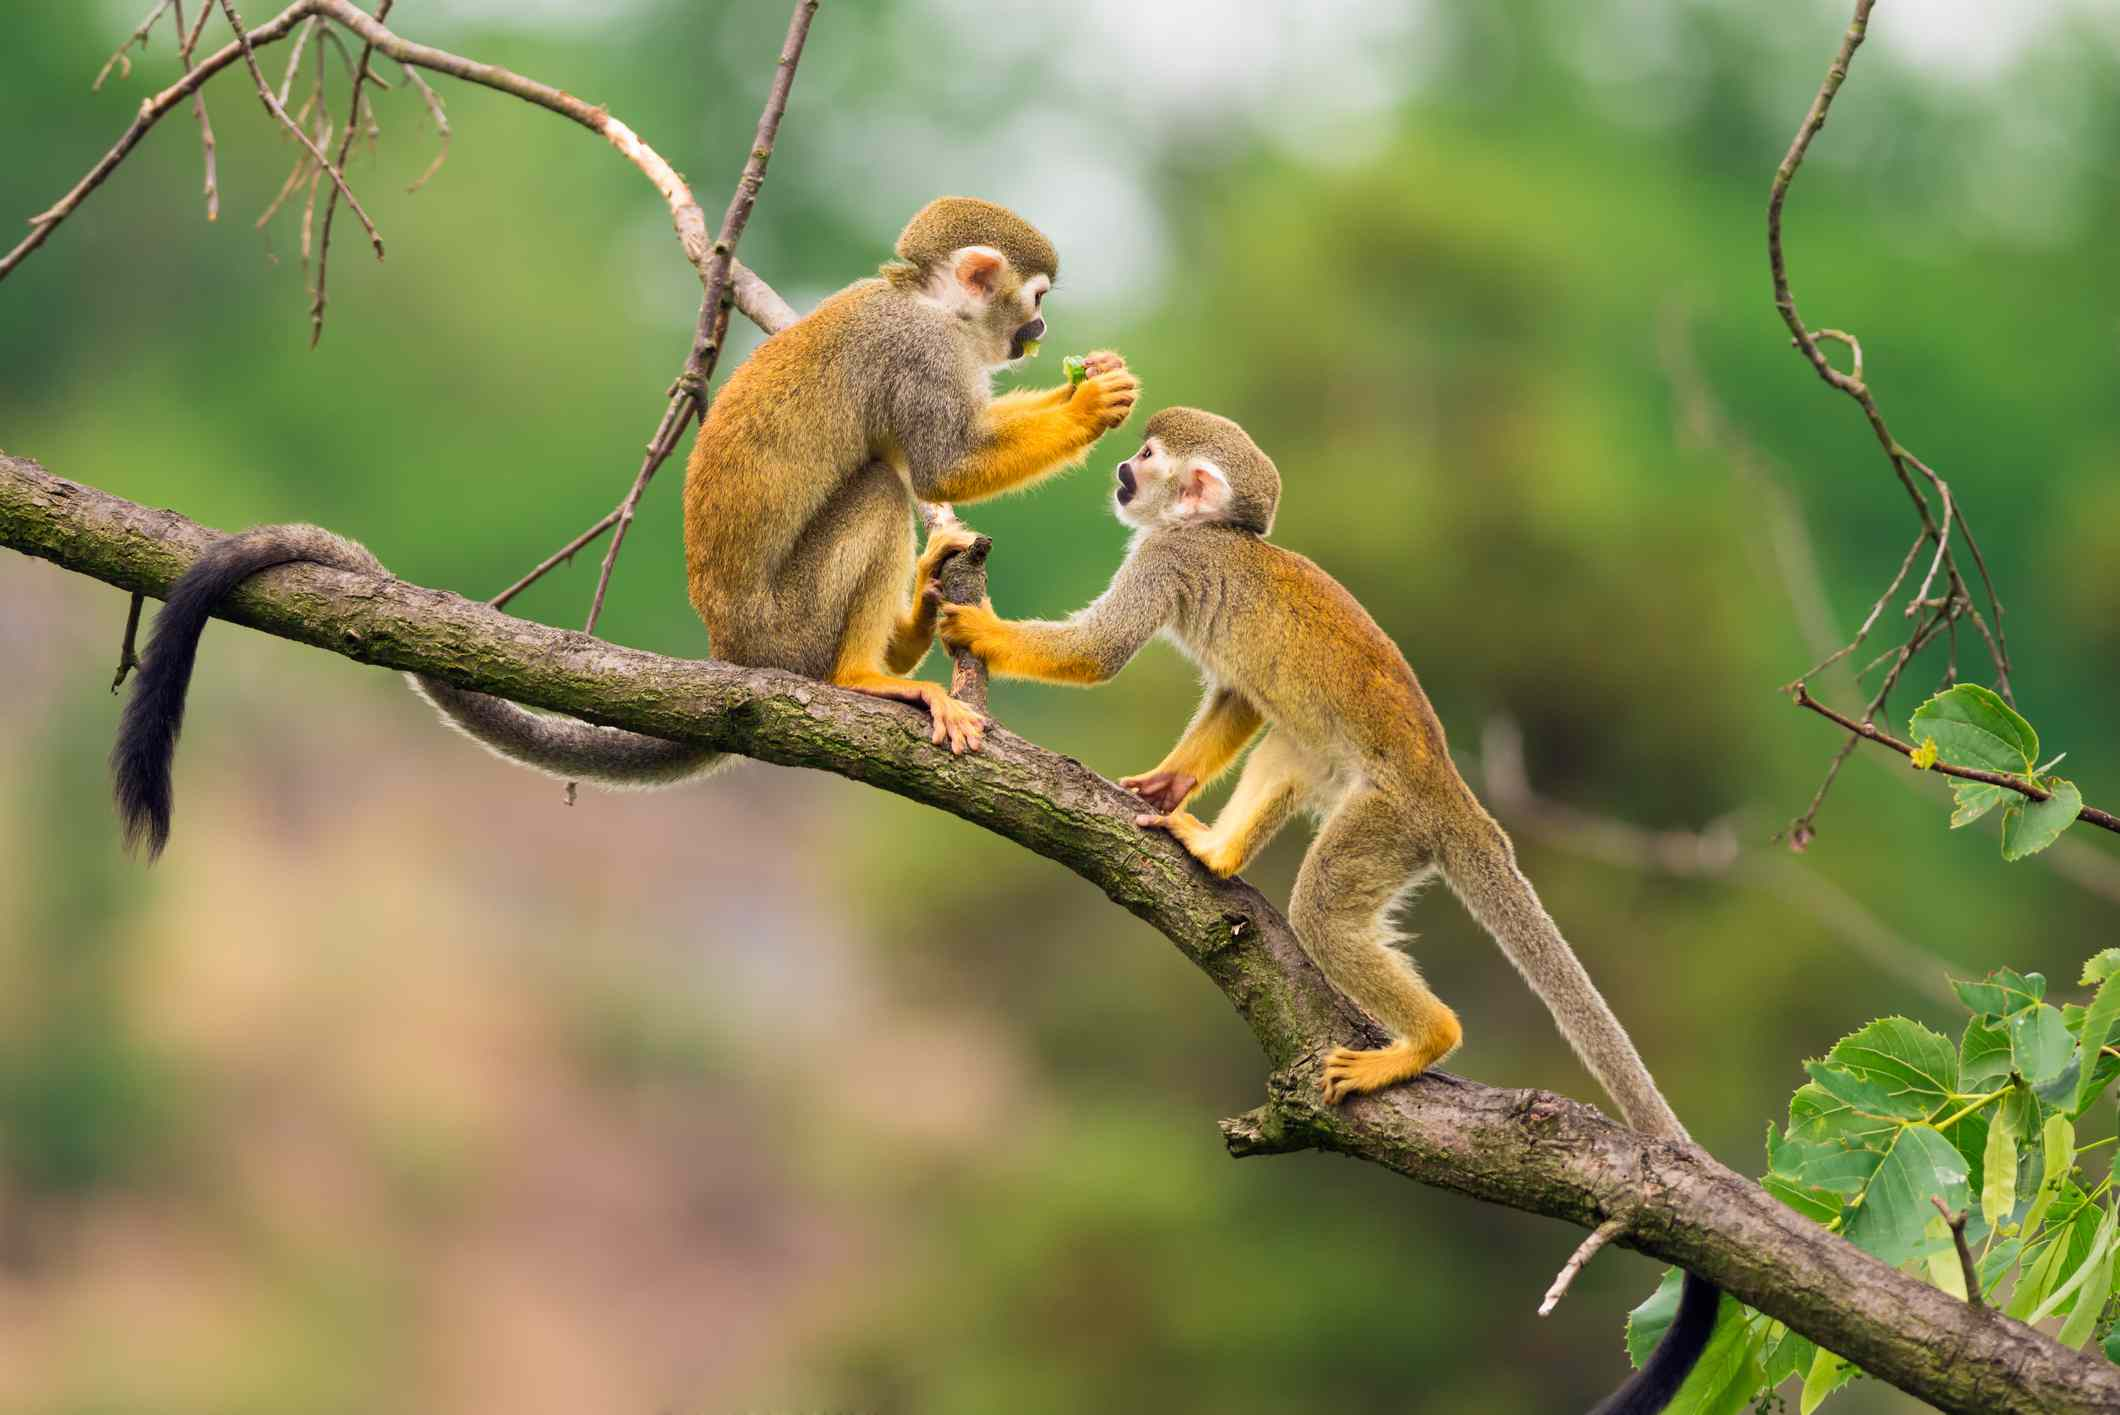 two tan squirrel monkeys playing on tree branch